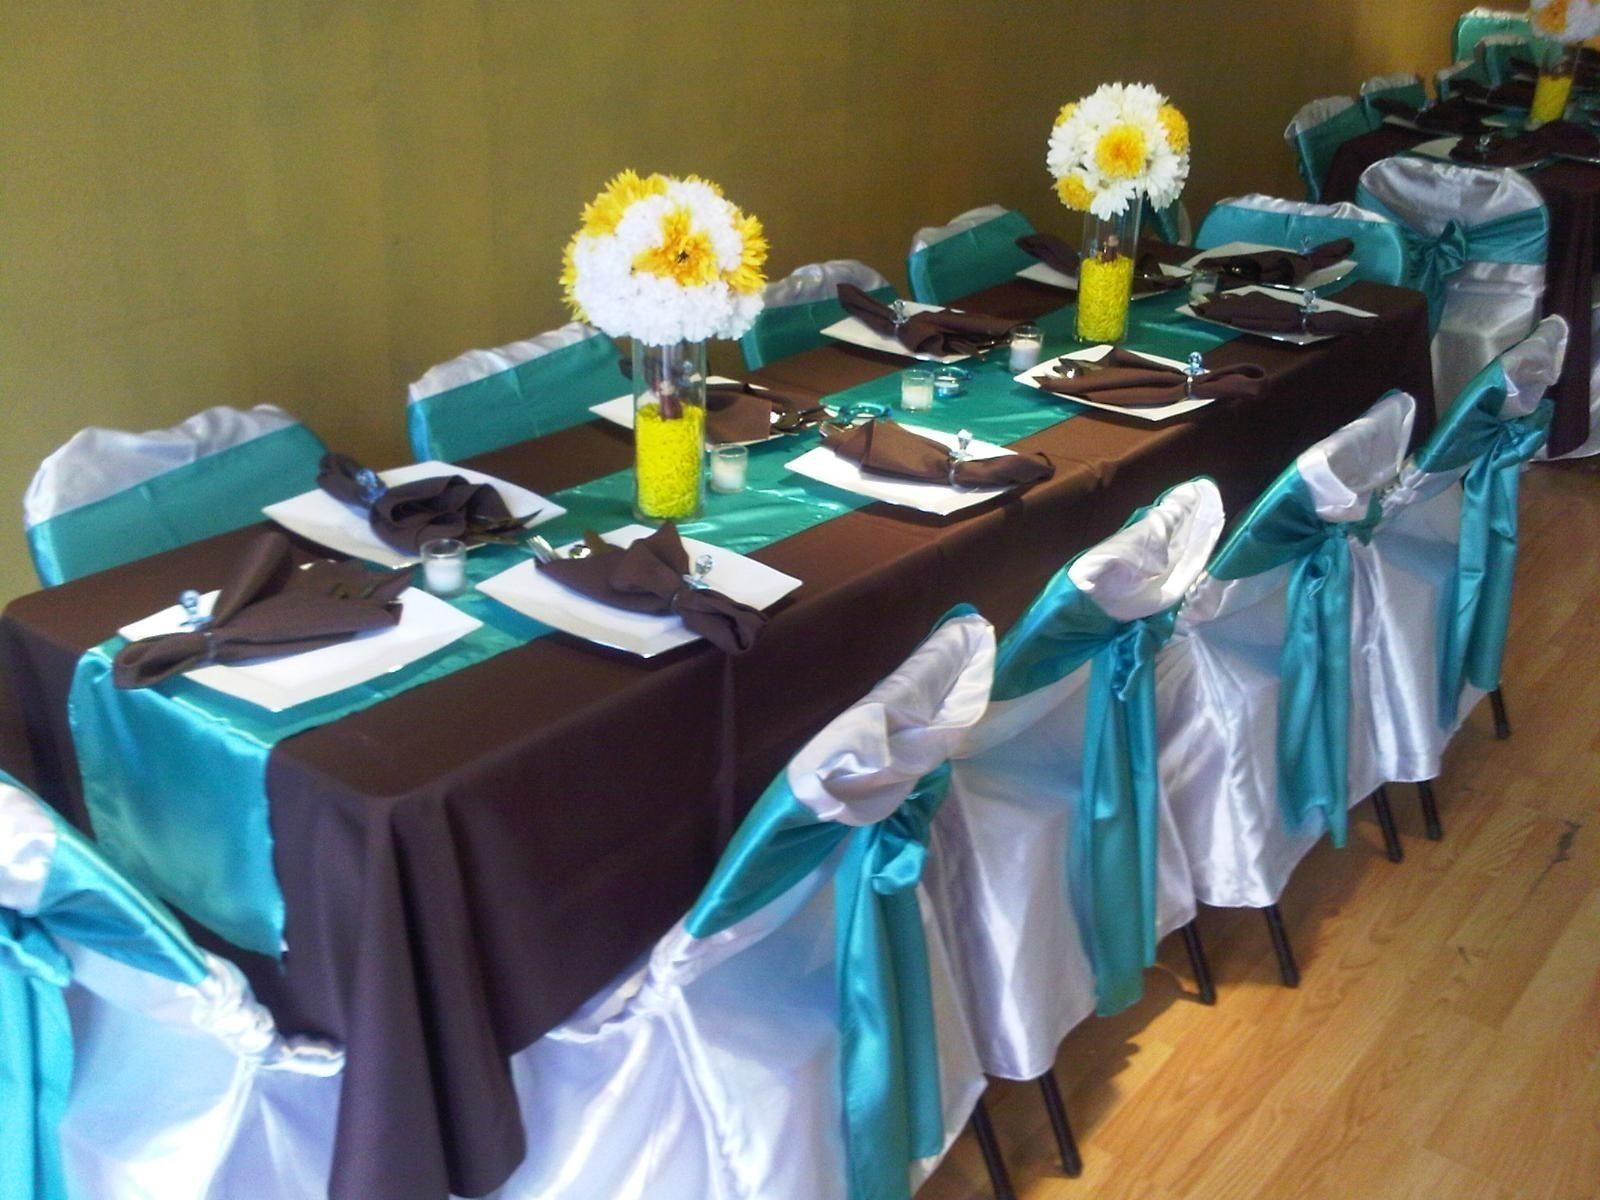 10 Attractive Baby Shower Centerpieces Ideas For Boys inexpensive baby shower ideas baby shower centerpiece ideas 3 2020